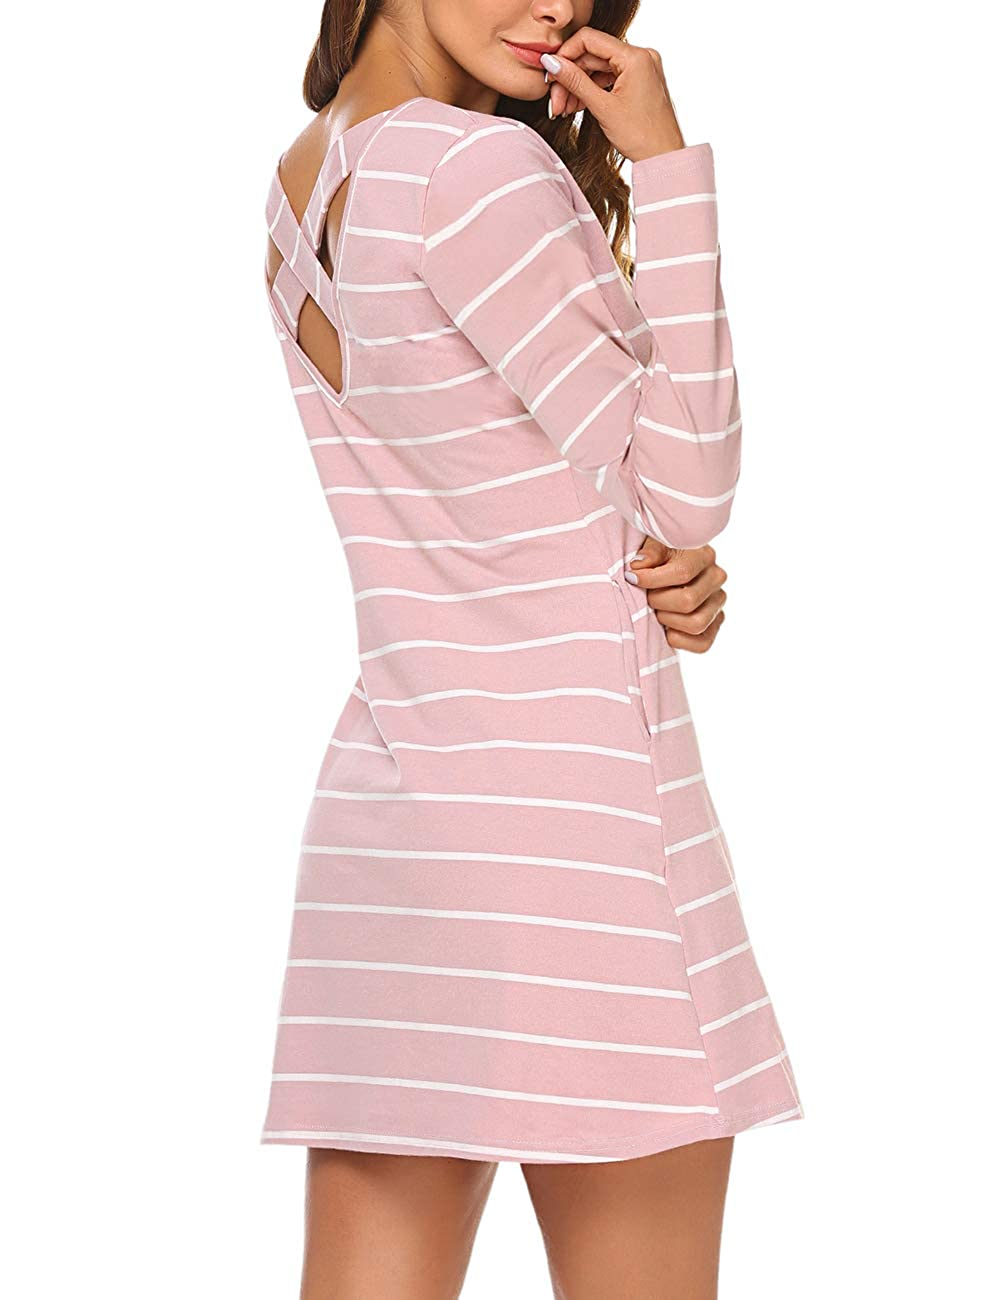 LuckyMore Women's Casual Long Sleeve Criss Cross Back Striped T Shirt Tunic Mini Dress with Pockets